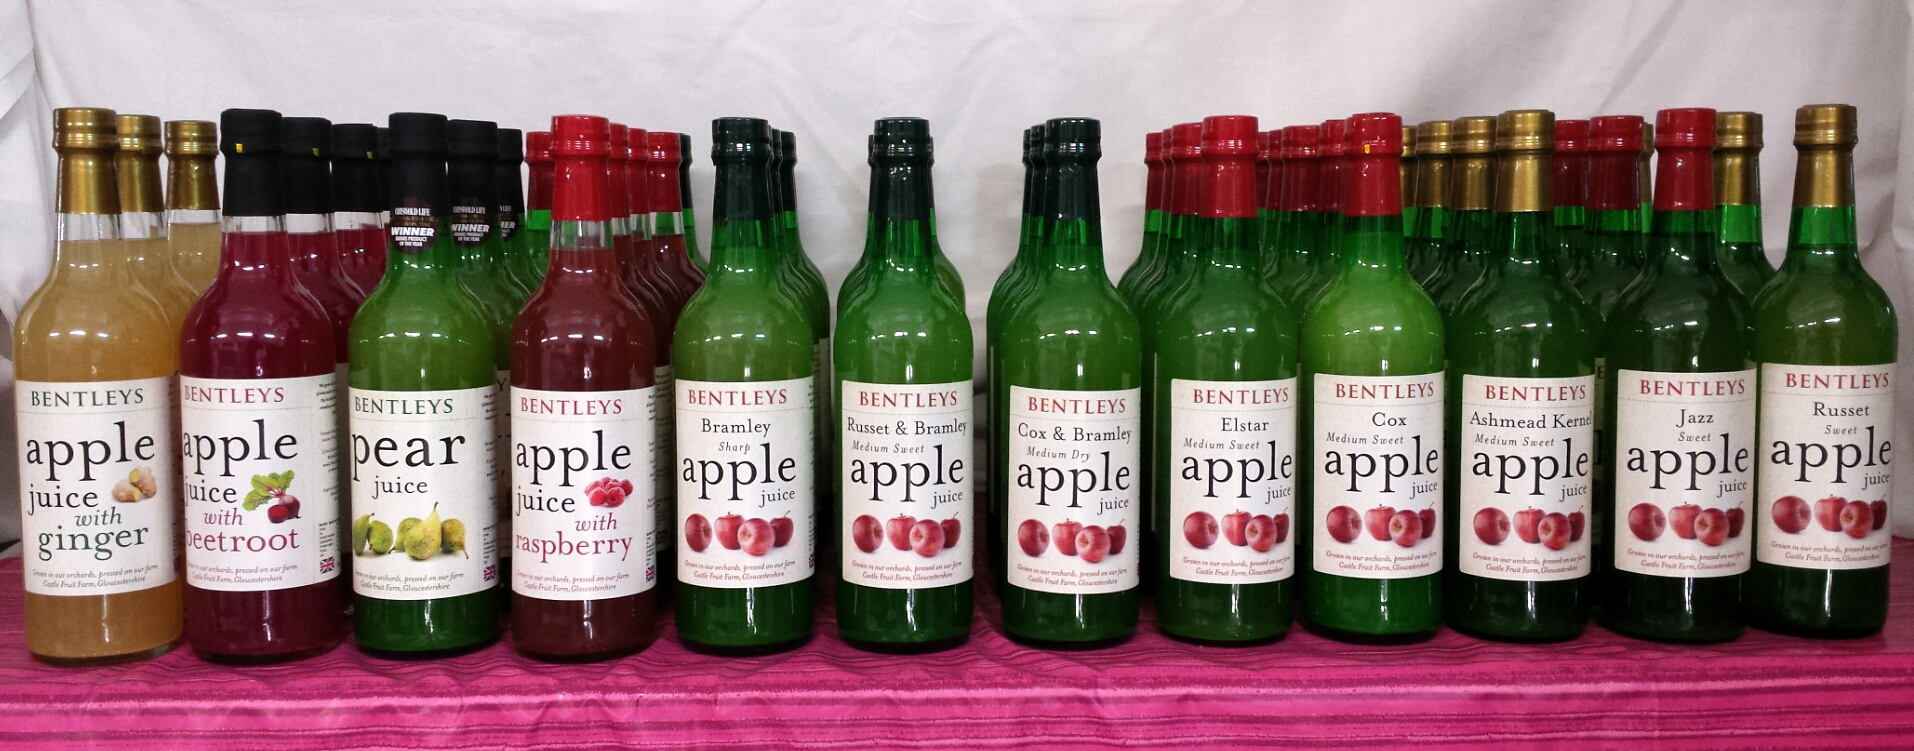 Apples Pears Plums And Cold Pressed Juices From